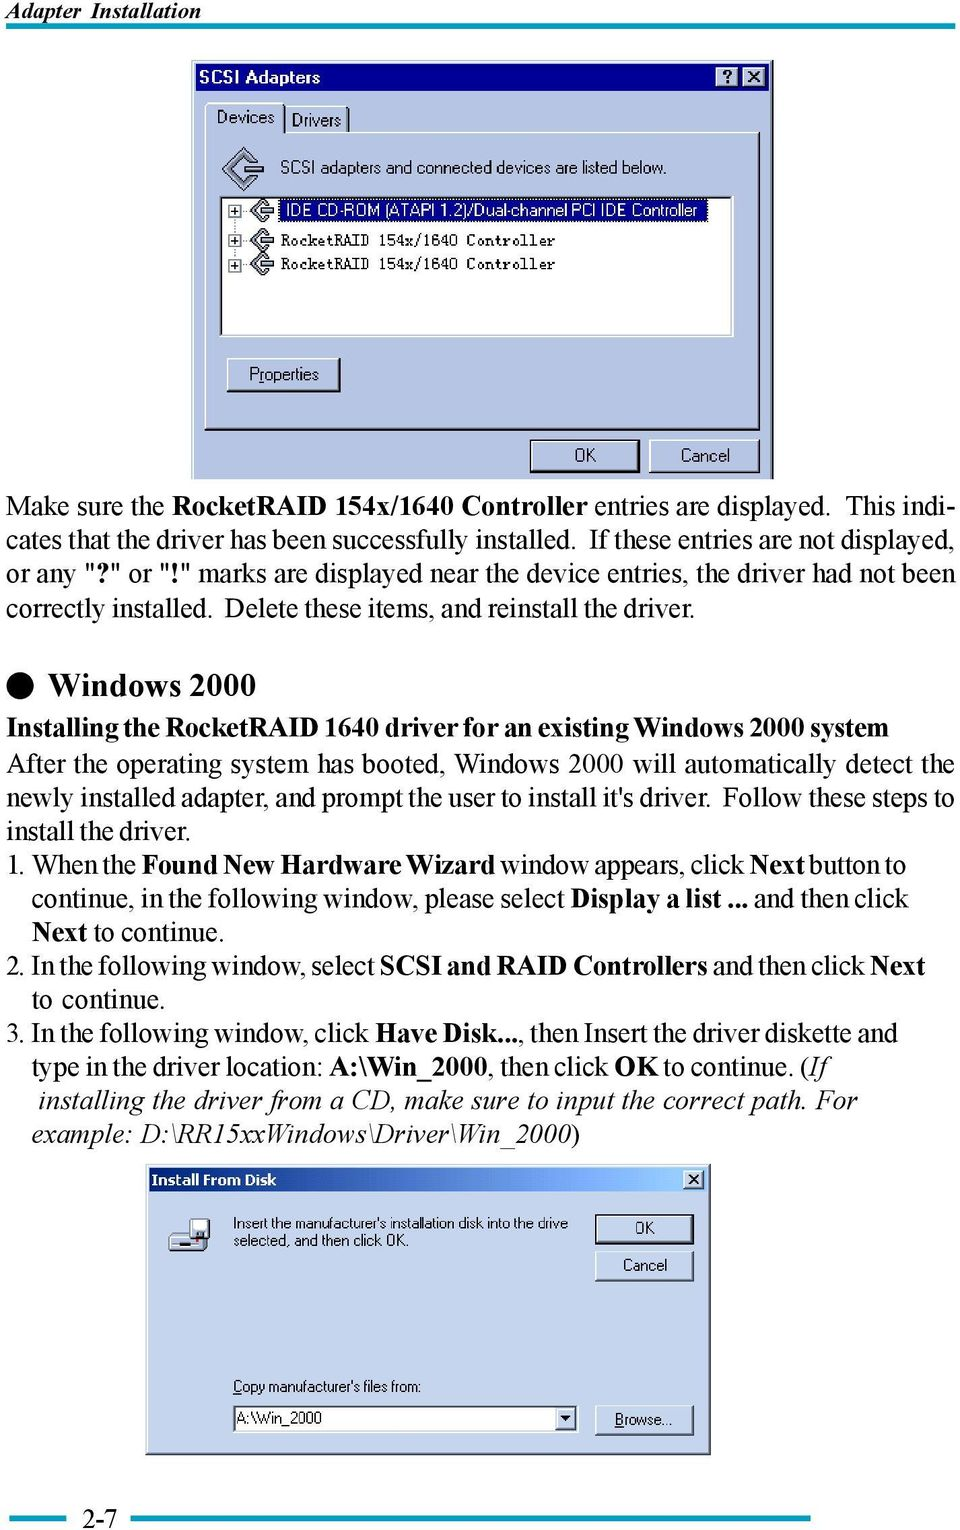 ! Windows 2000 Installing the RocketRAID 1640 driver for an existing Windows 2000 system After the operating system has booted, Windows 2000 will automatically detect the newly installed adapter, and